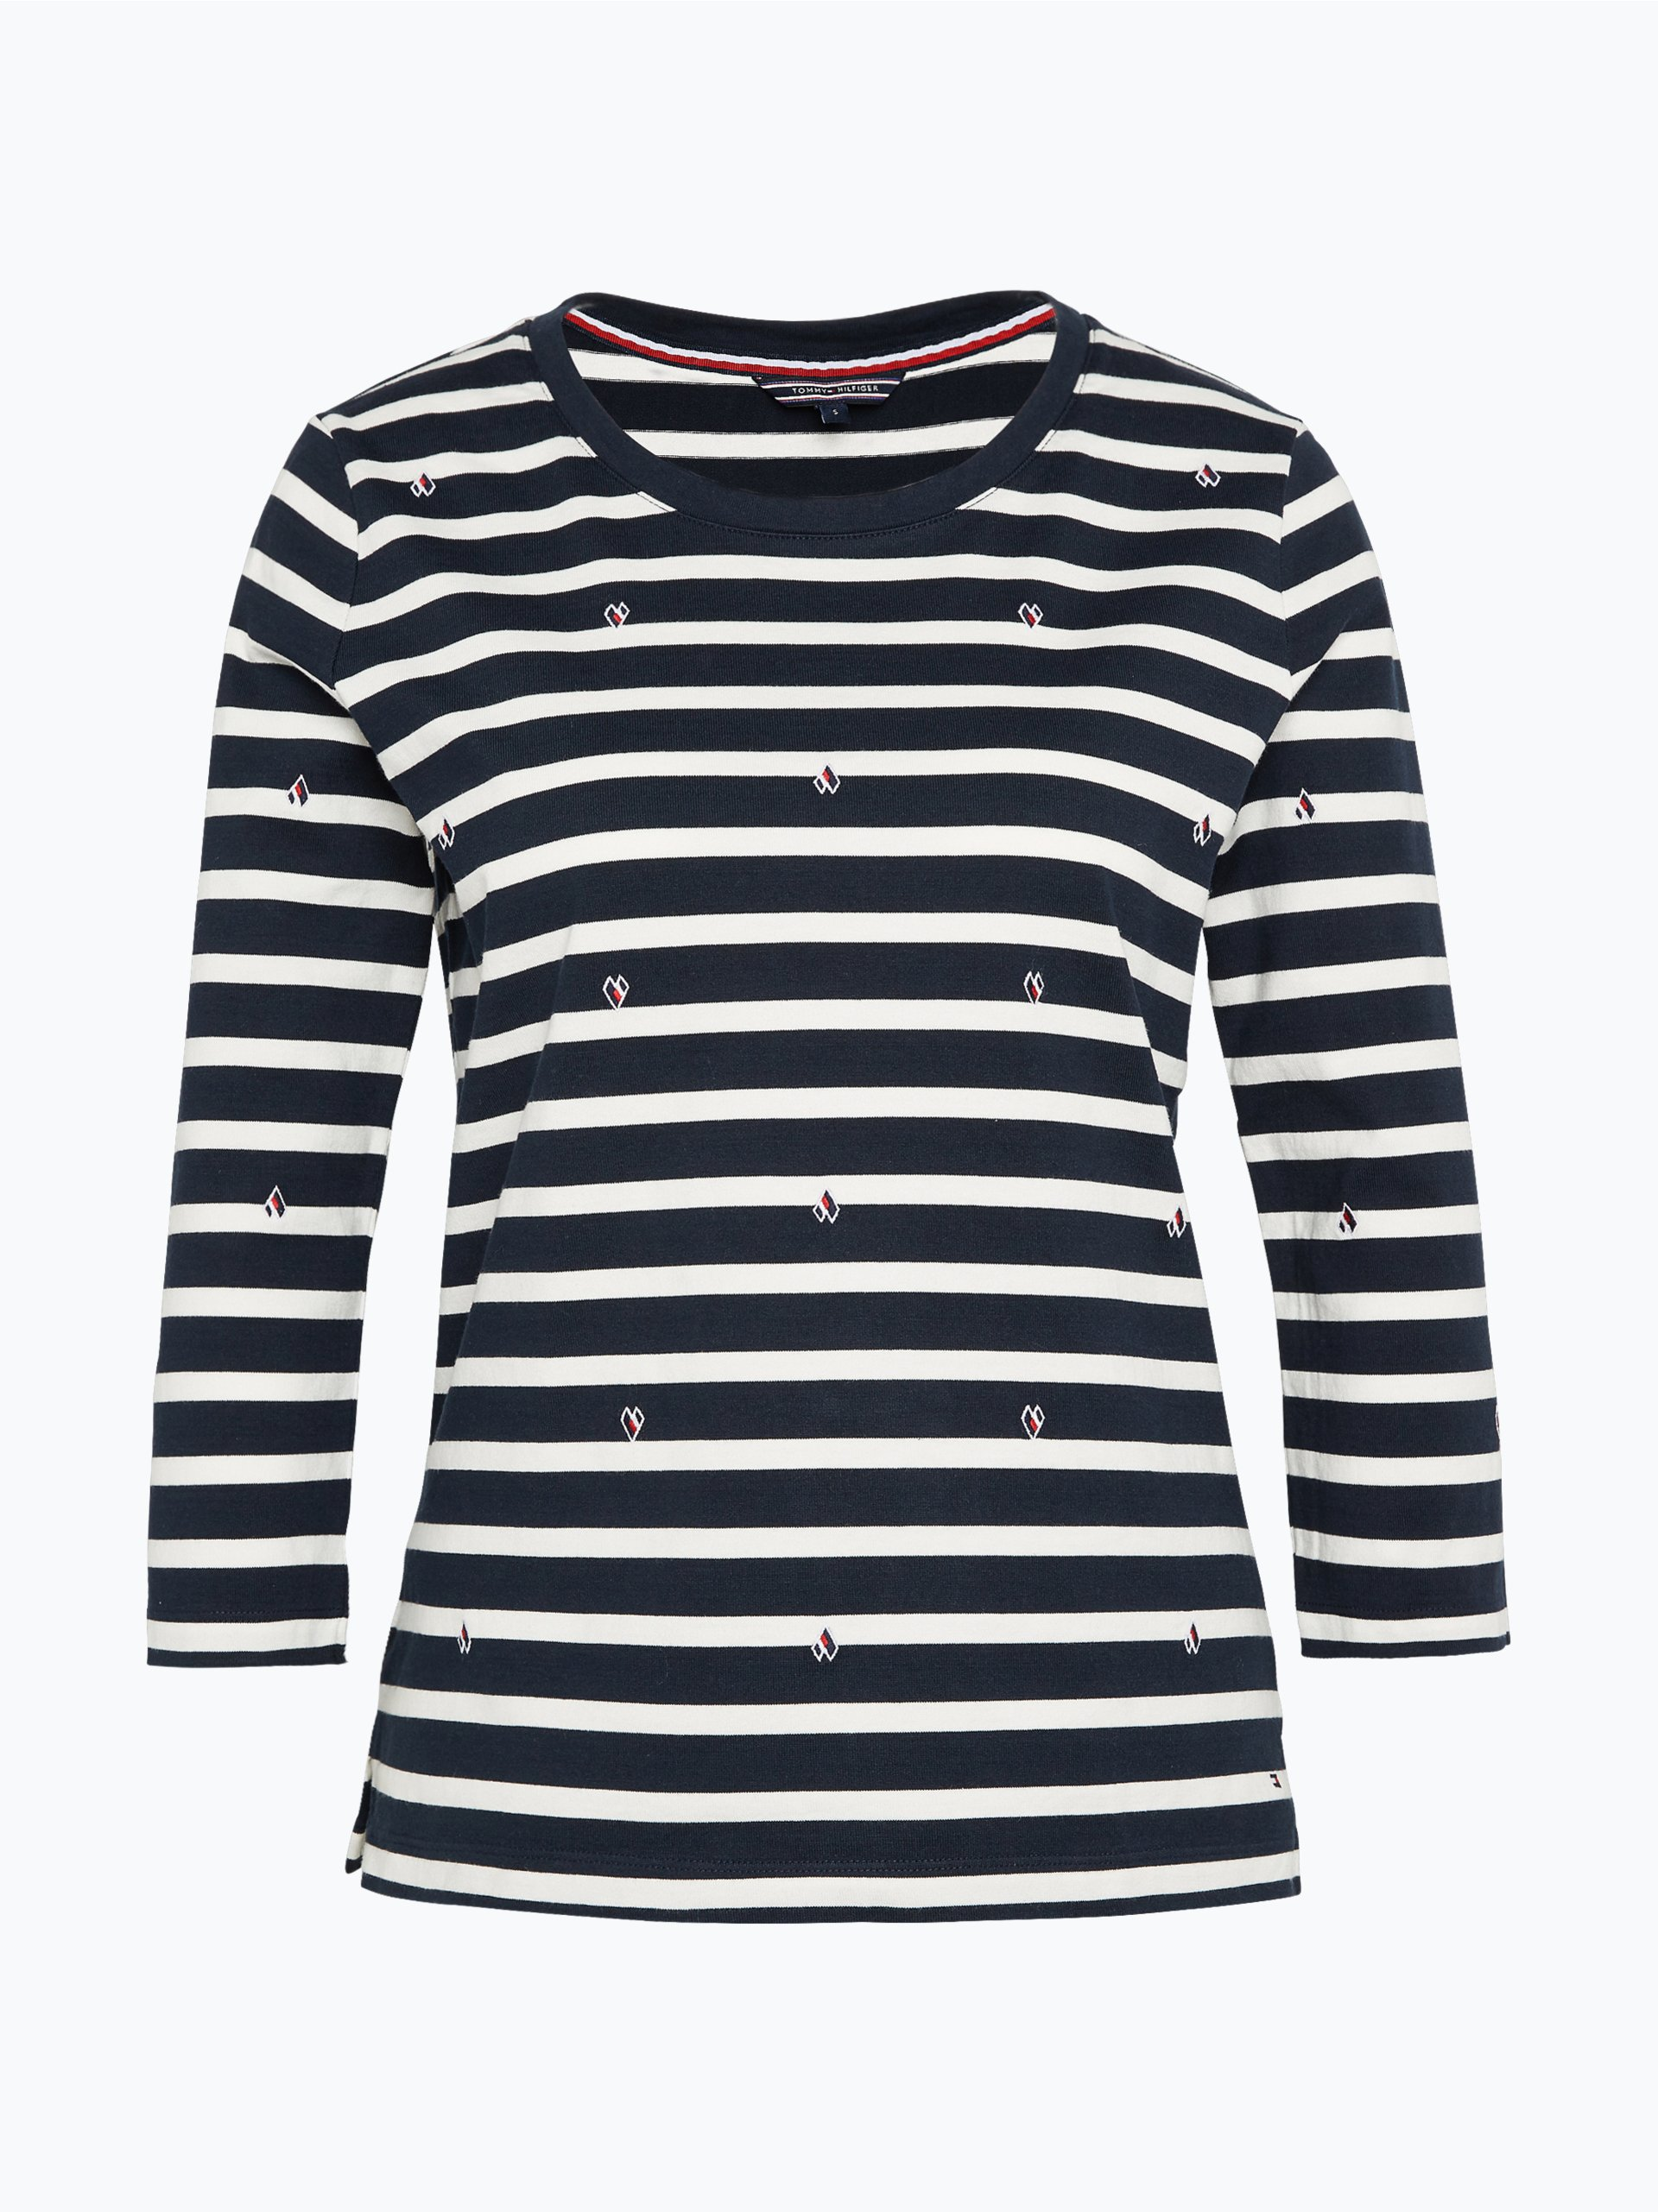 tommy hilfiger damen langarmshirt myra marine gestreift online kaufen vangraaf com. Black Bedroom Furniture Sets. Home Design Ideas